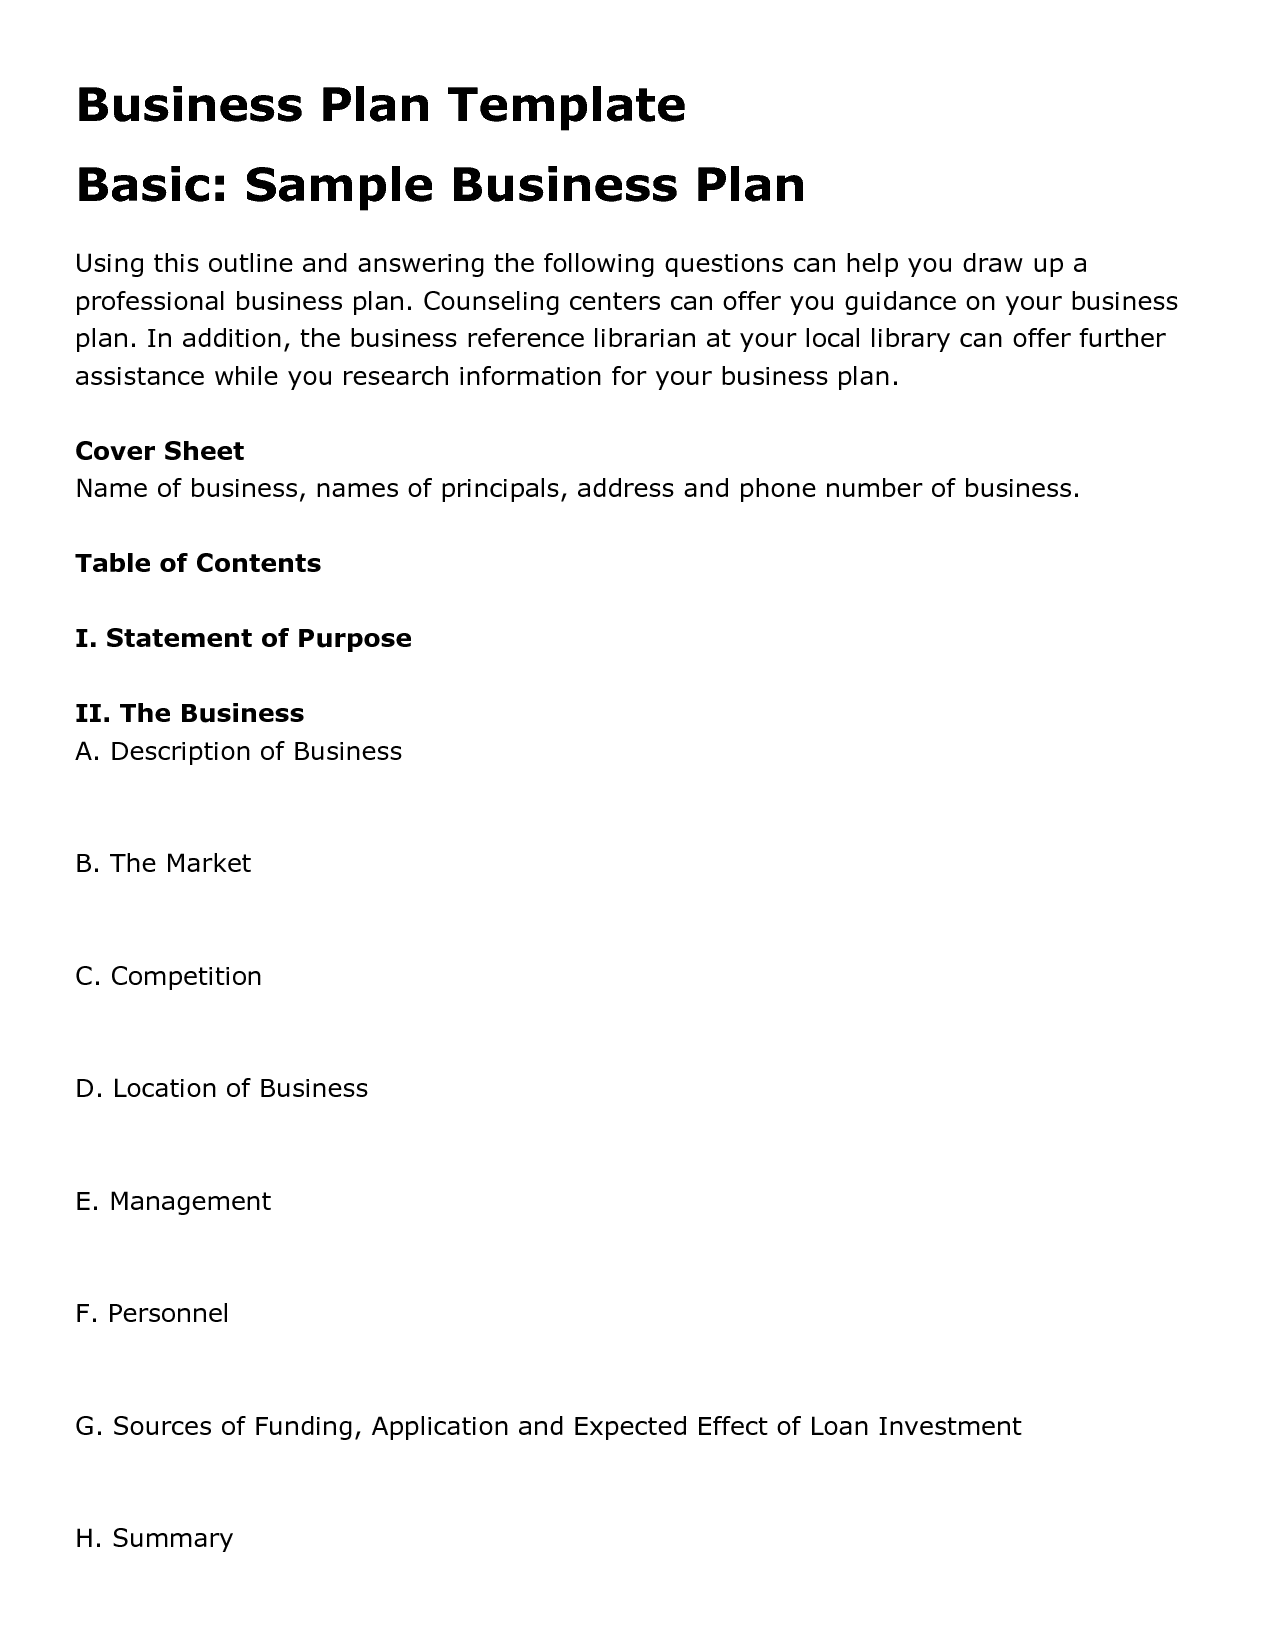 Templates free business plan template business plan template top 5 simple business plan design entrepreneur pinterest simple free restaurant business plan template flashek